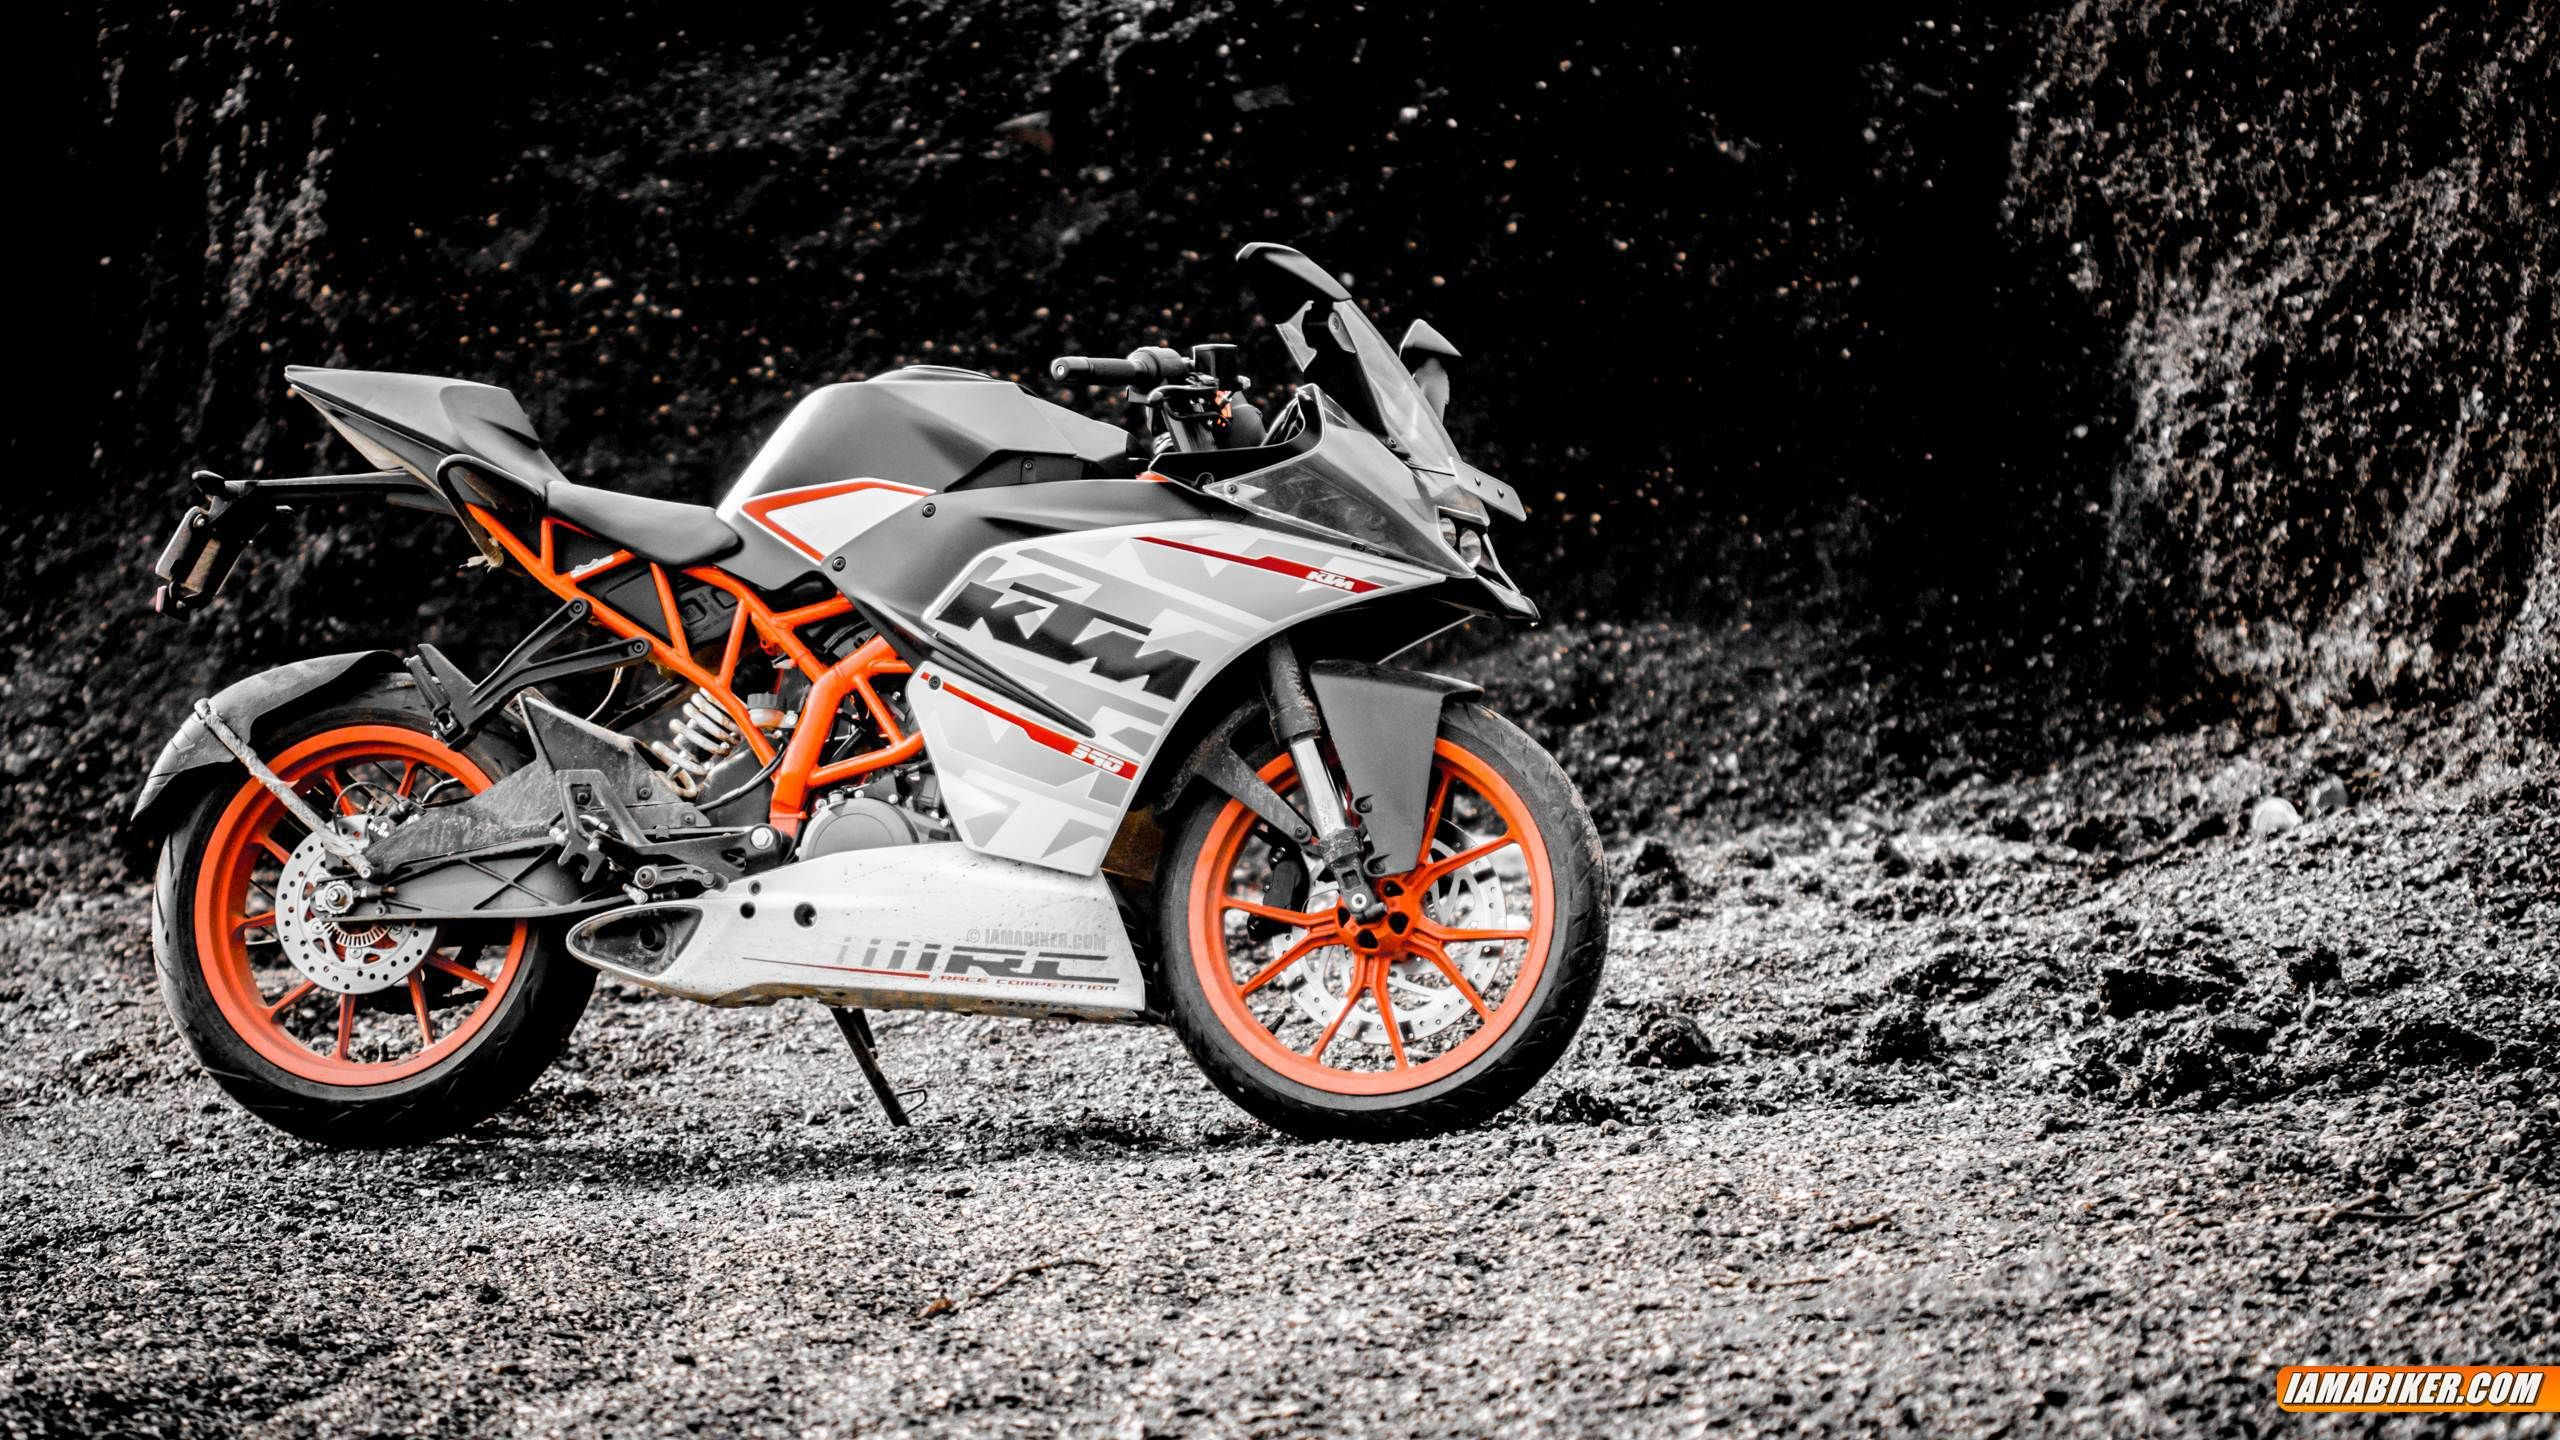 Ktm Wallpaper Ktm High Quality Pictures Free Download Pack V Ktm